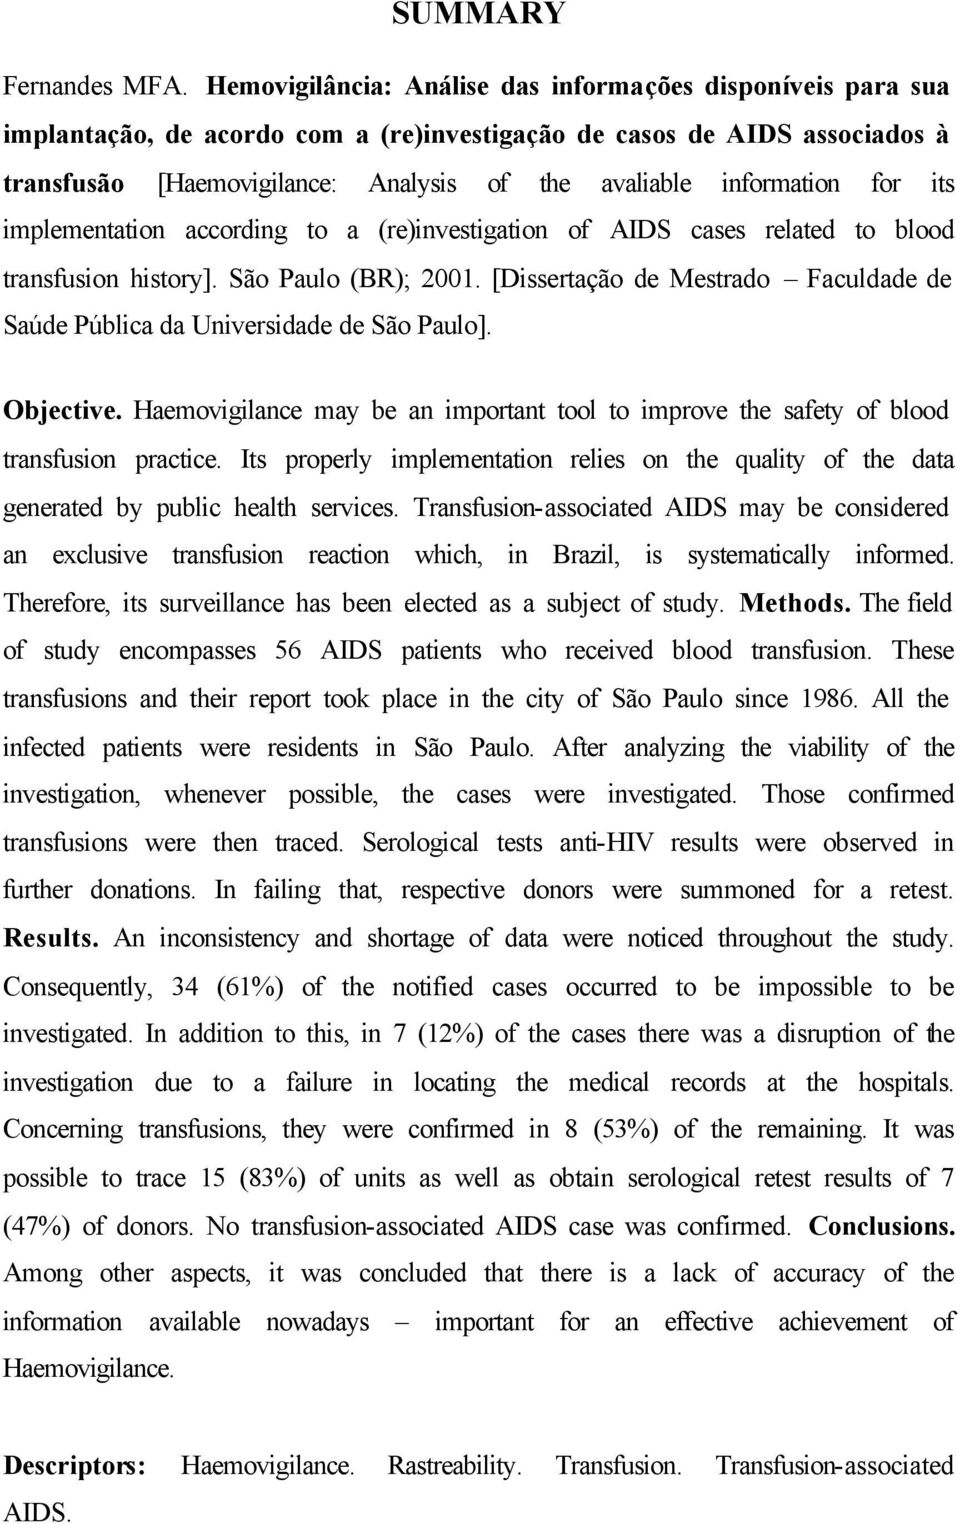 information for its implementation according to a (re)investigation of AIDS cases related to blood transfusion history]. São Paulo (BR); 2001.